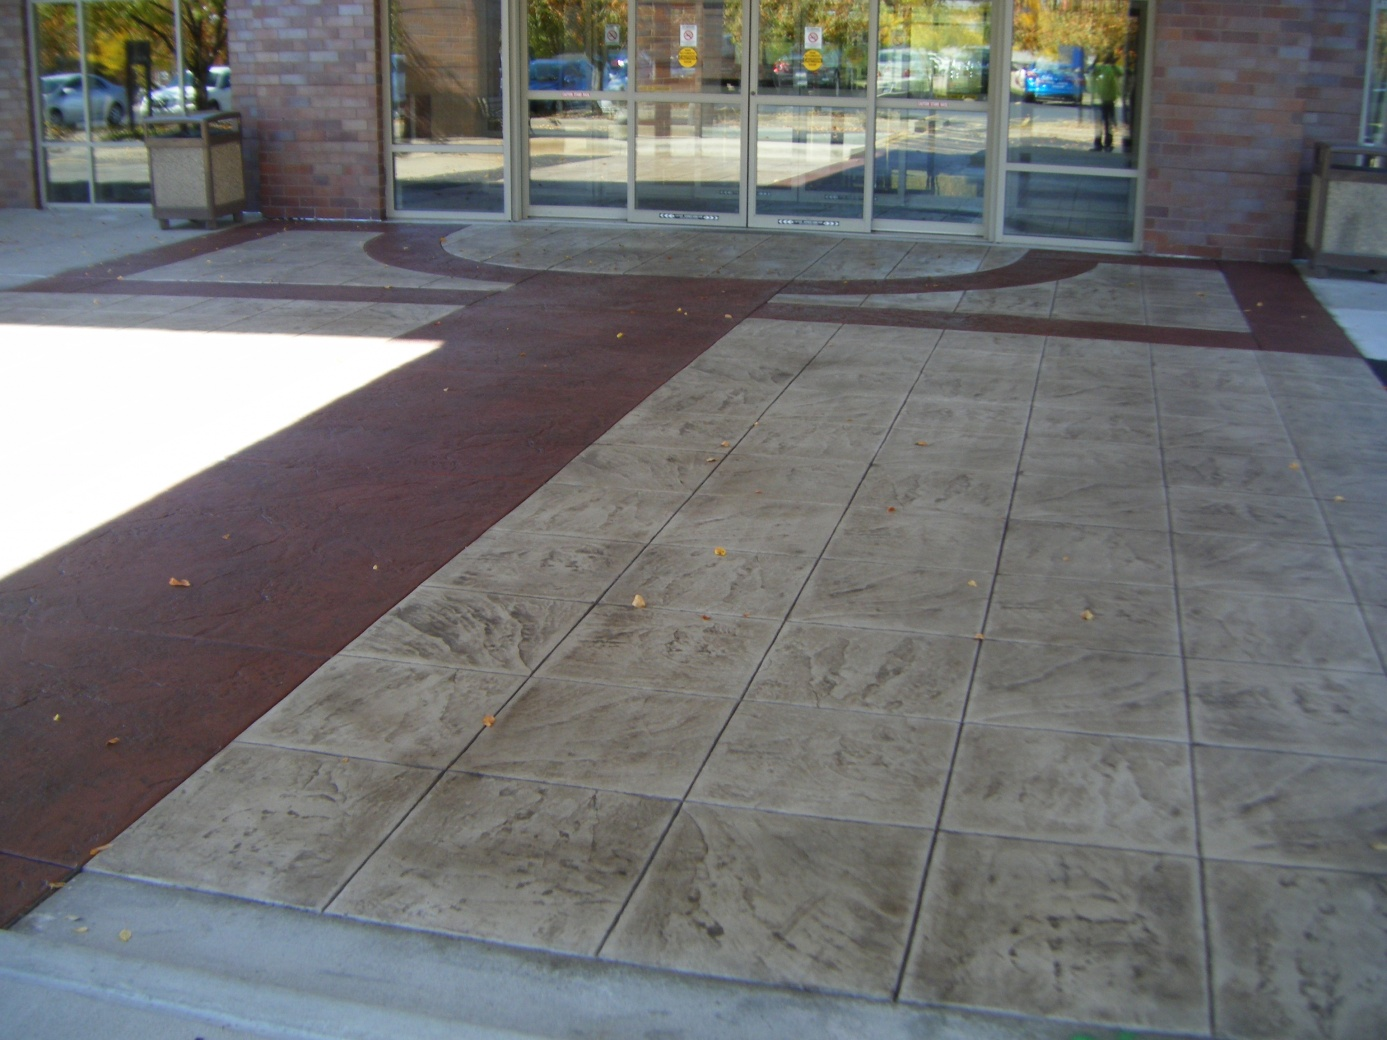 Commercial stamped concrete in front of a building with sliding glass doors.